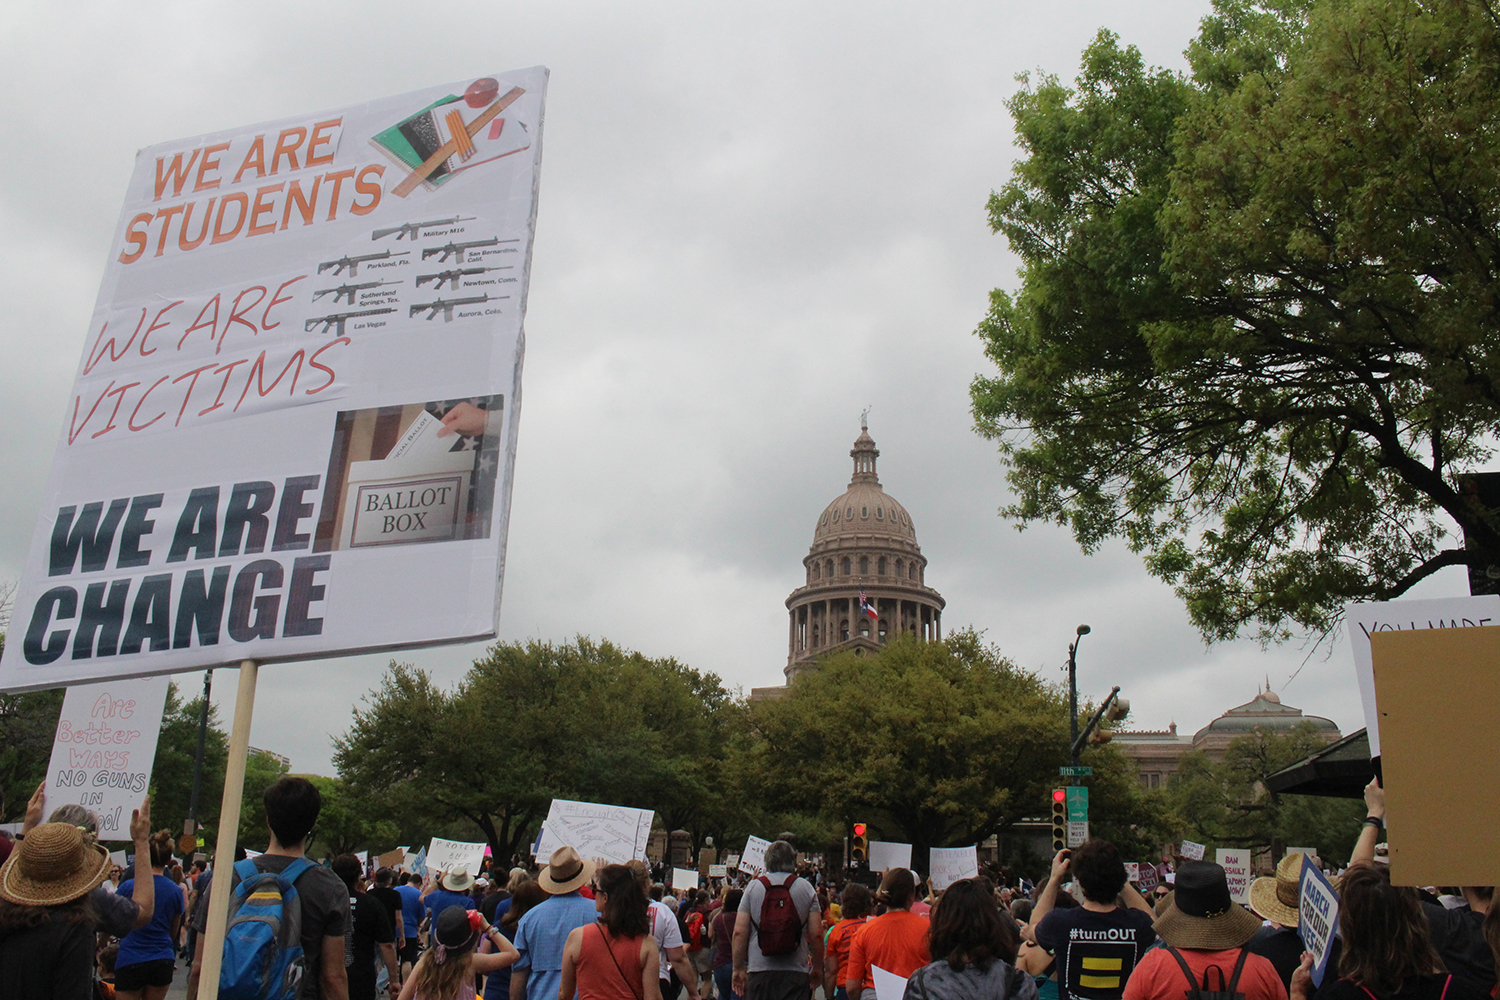 The March for Our Lives protest started at Austin City Hall and stretched down Congress Avenue, ending at the Texas Capitol. Protestors demanded that lawmakers take action to end gun violence in Texas and beyond.